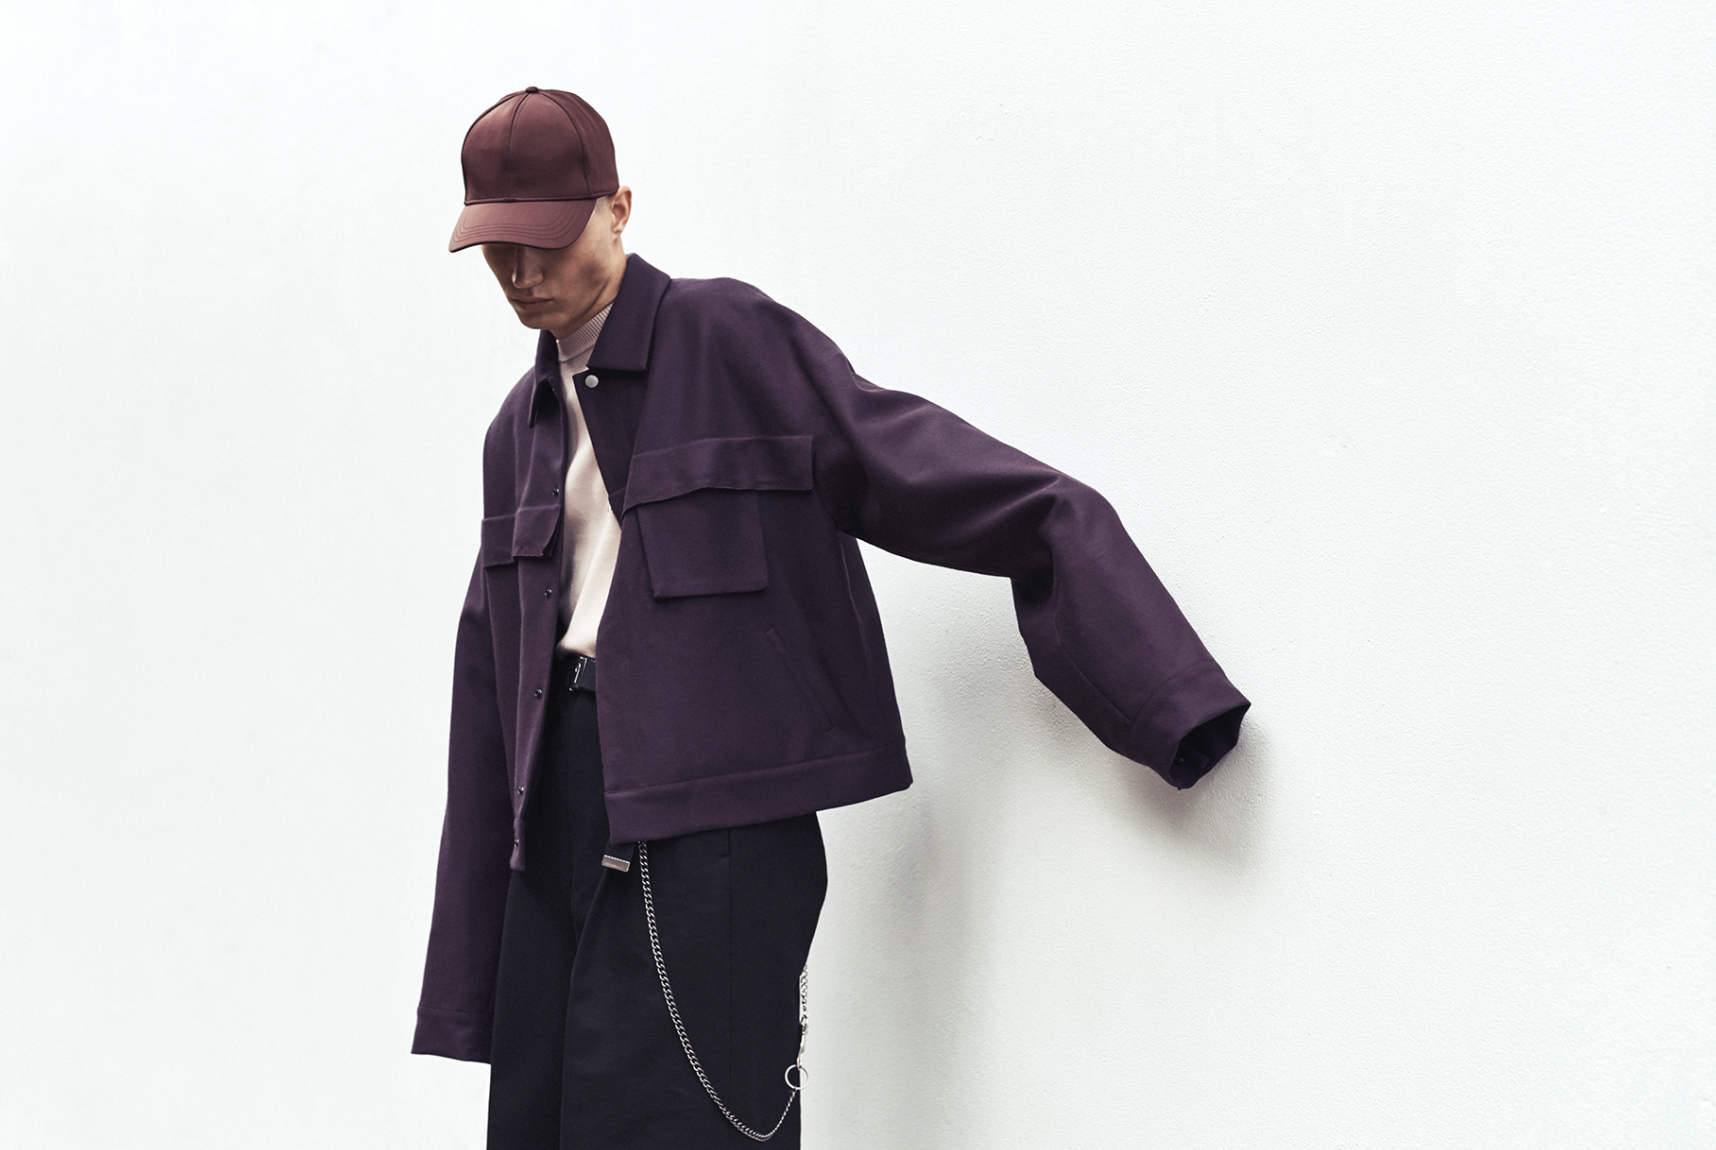 berthold-purple-jacket.jpg